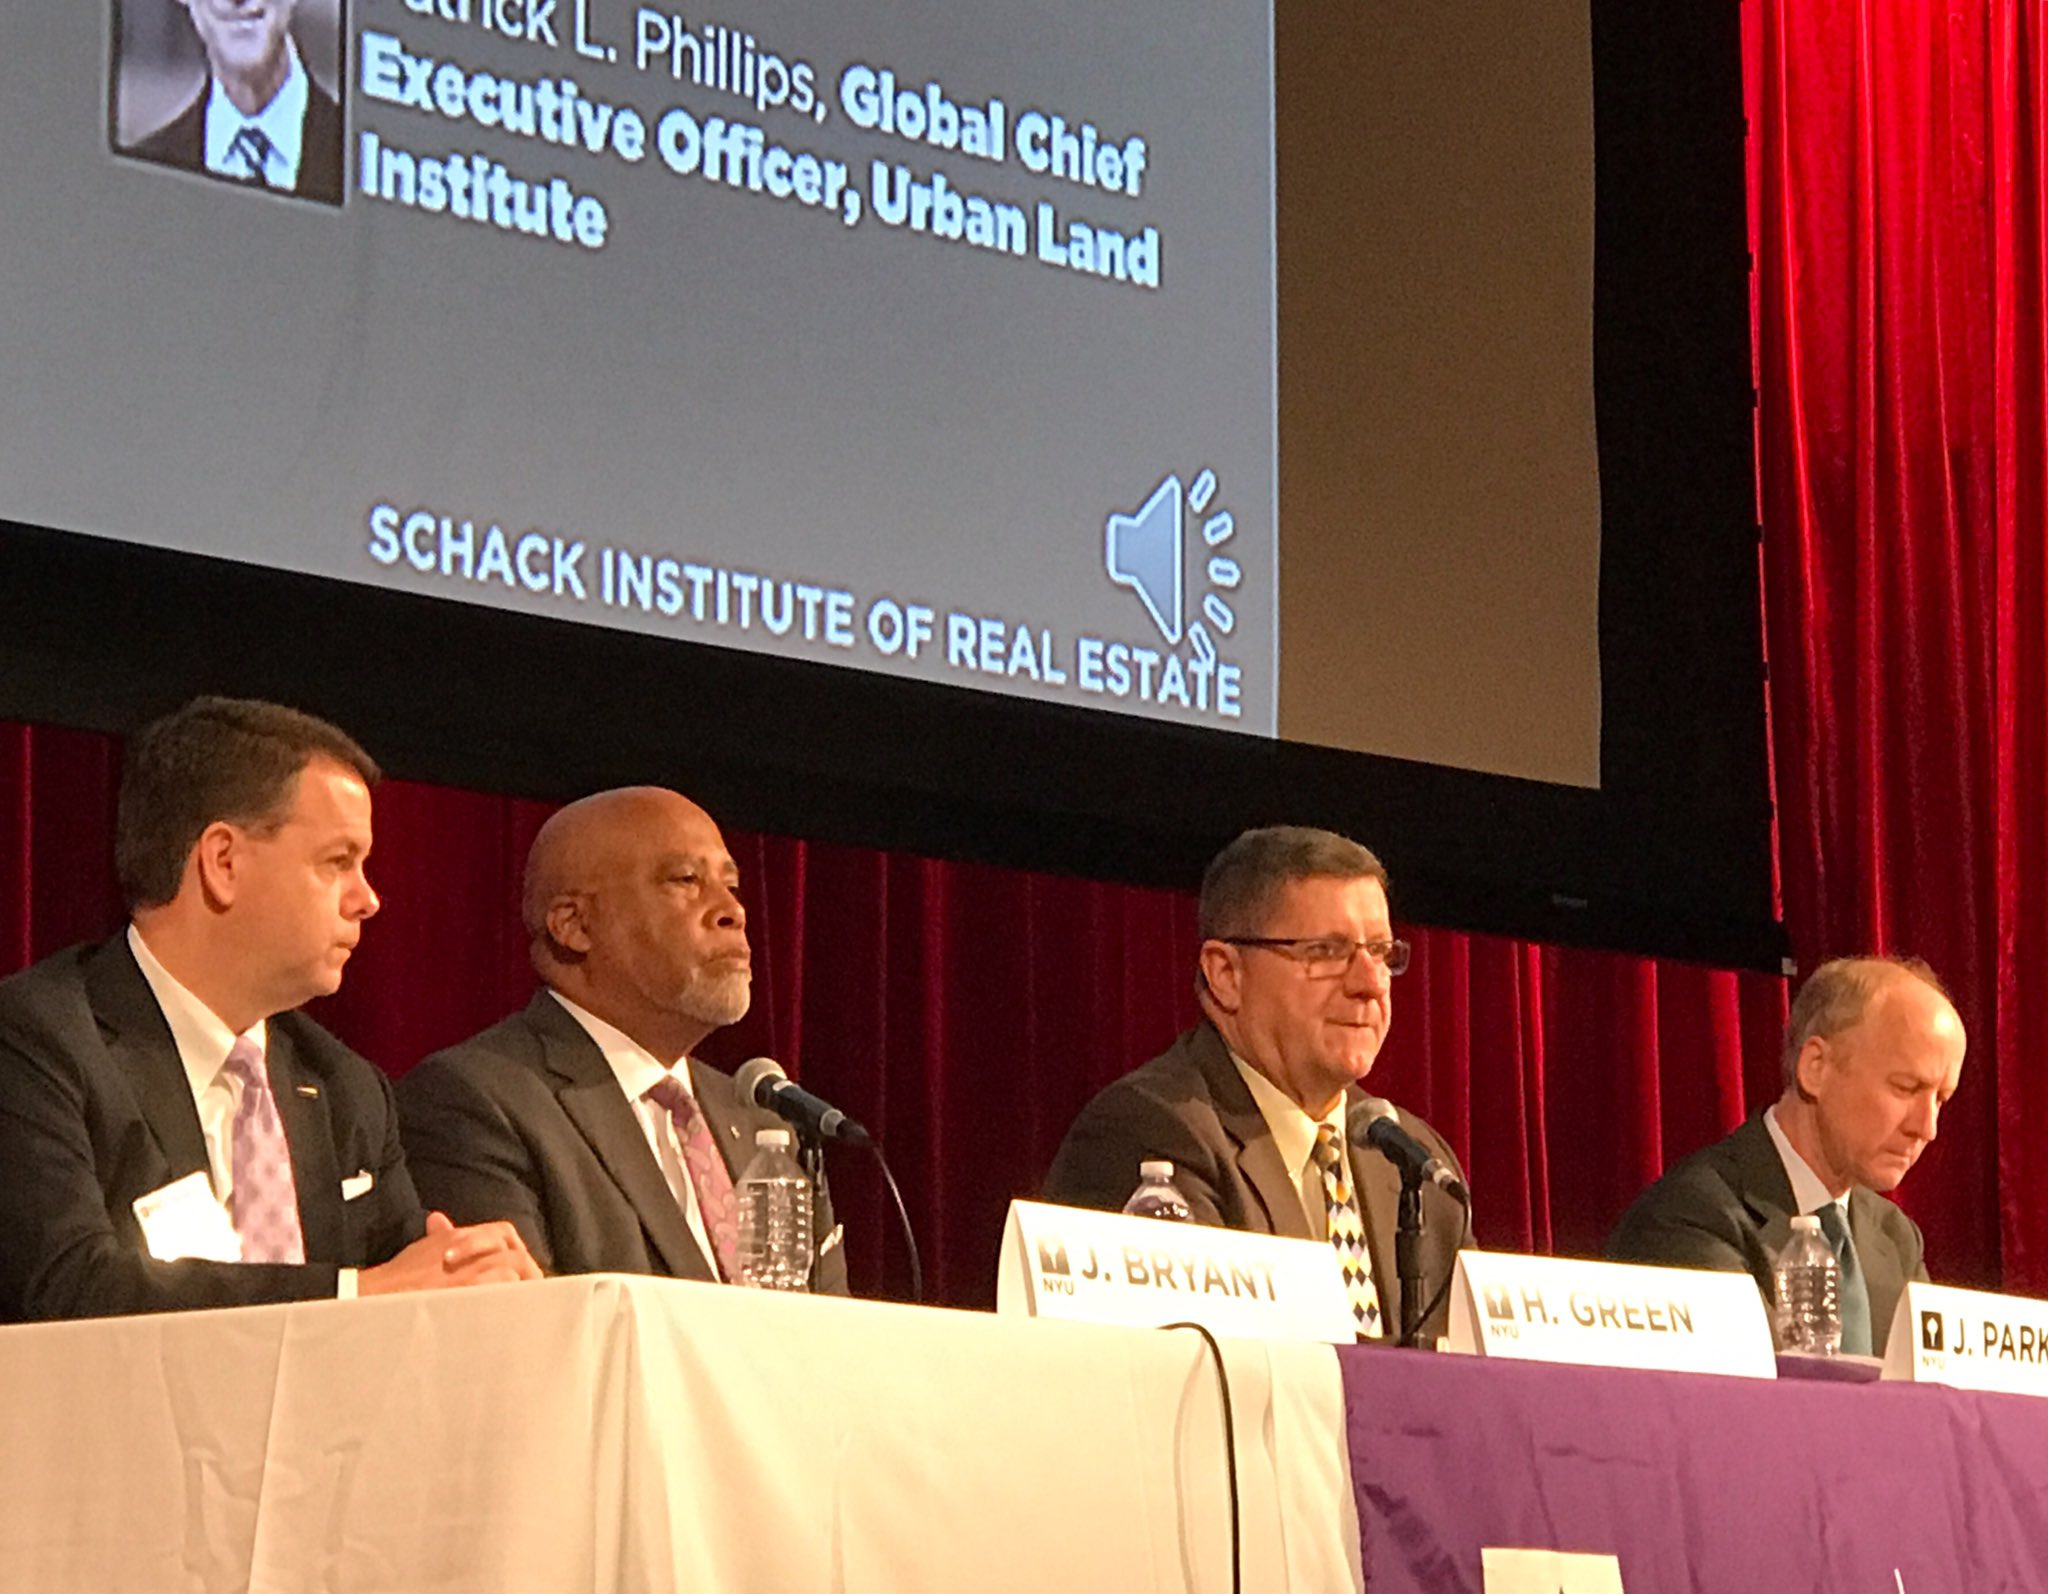 Bryant (@BOMAIntl), Green (NIBS), & Parkinson (AIAA), join @UrbanLandInst's @PLPhillips at @NYUSchack #Sustainability Conf #NYUSBE https://t.co/lTch8aYw7u